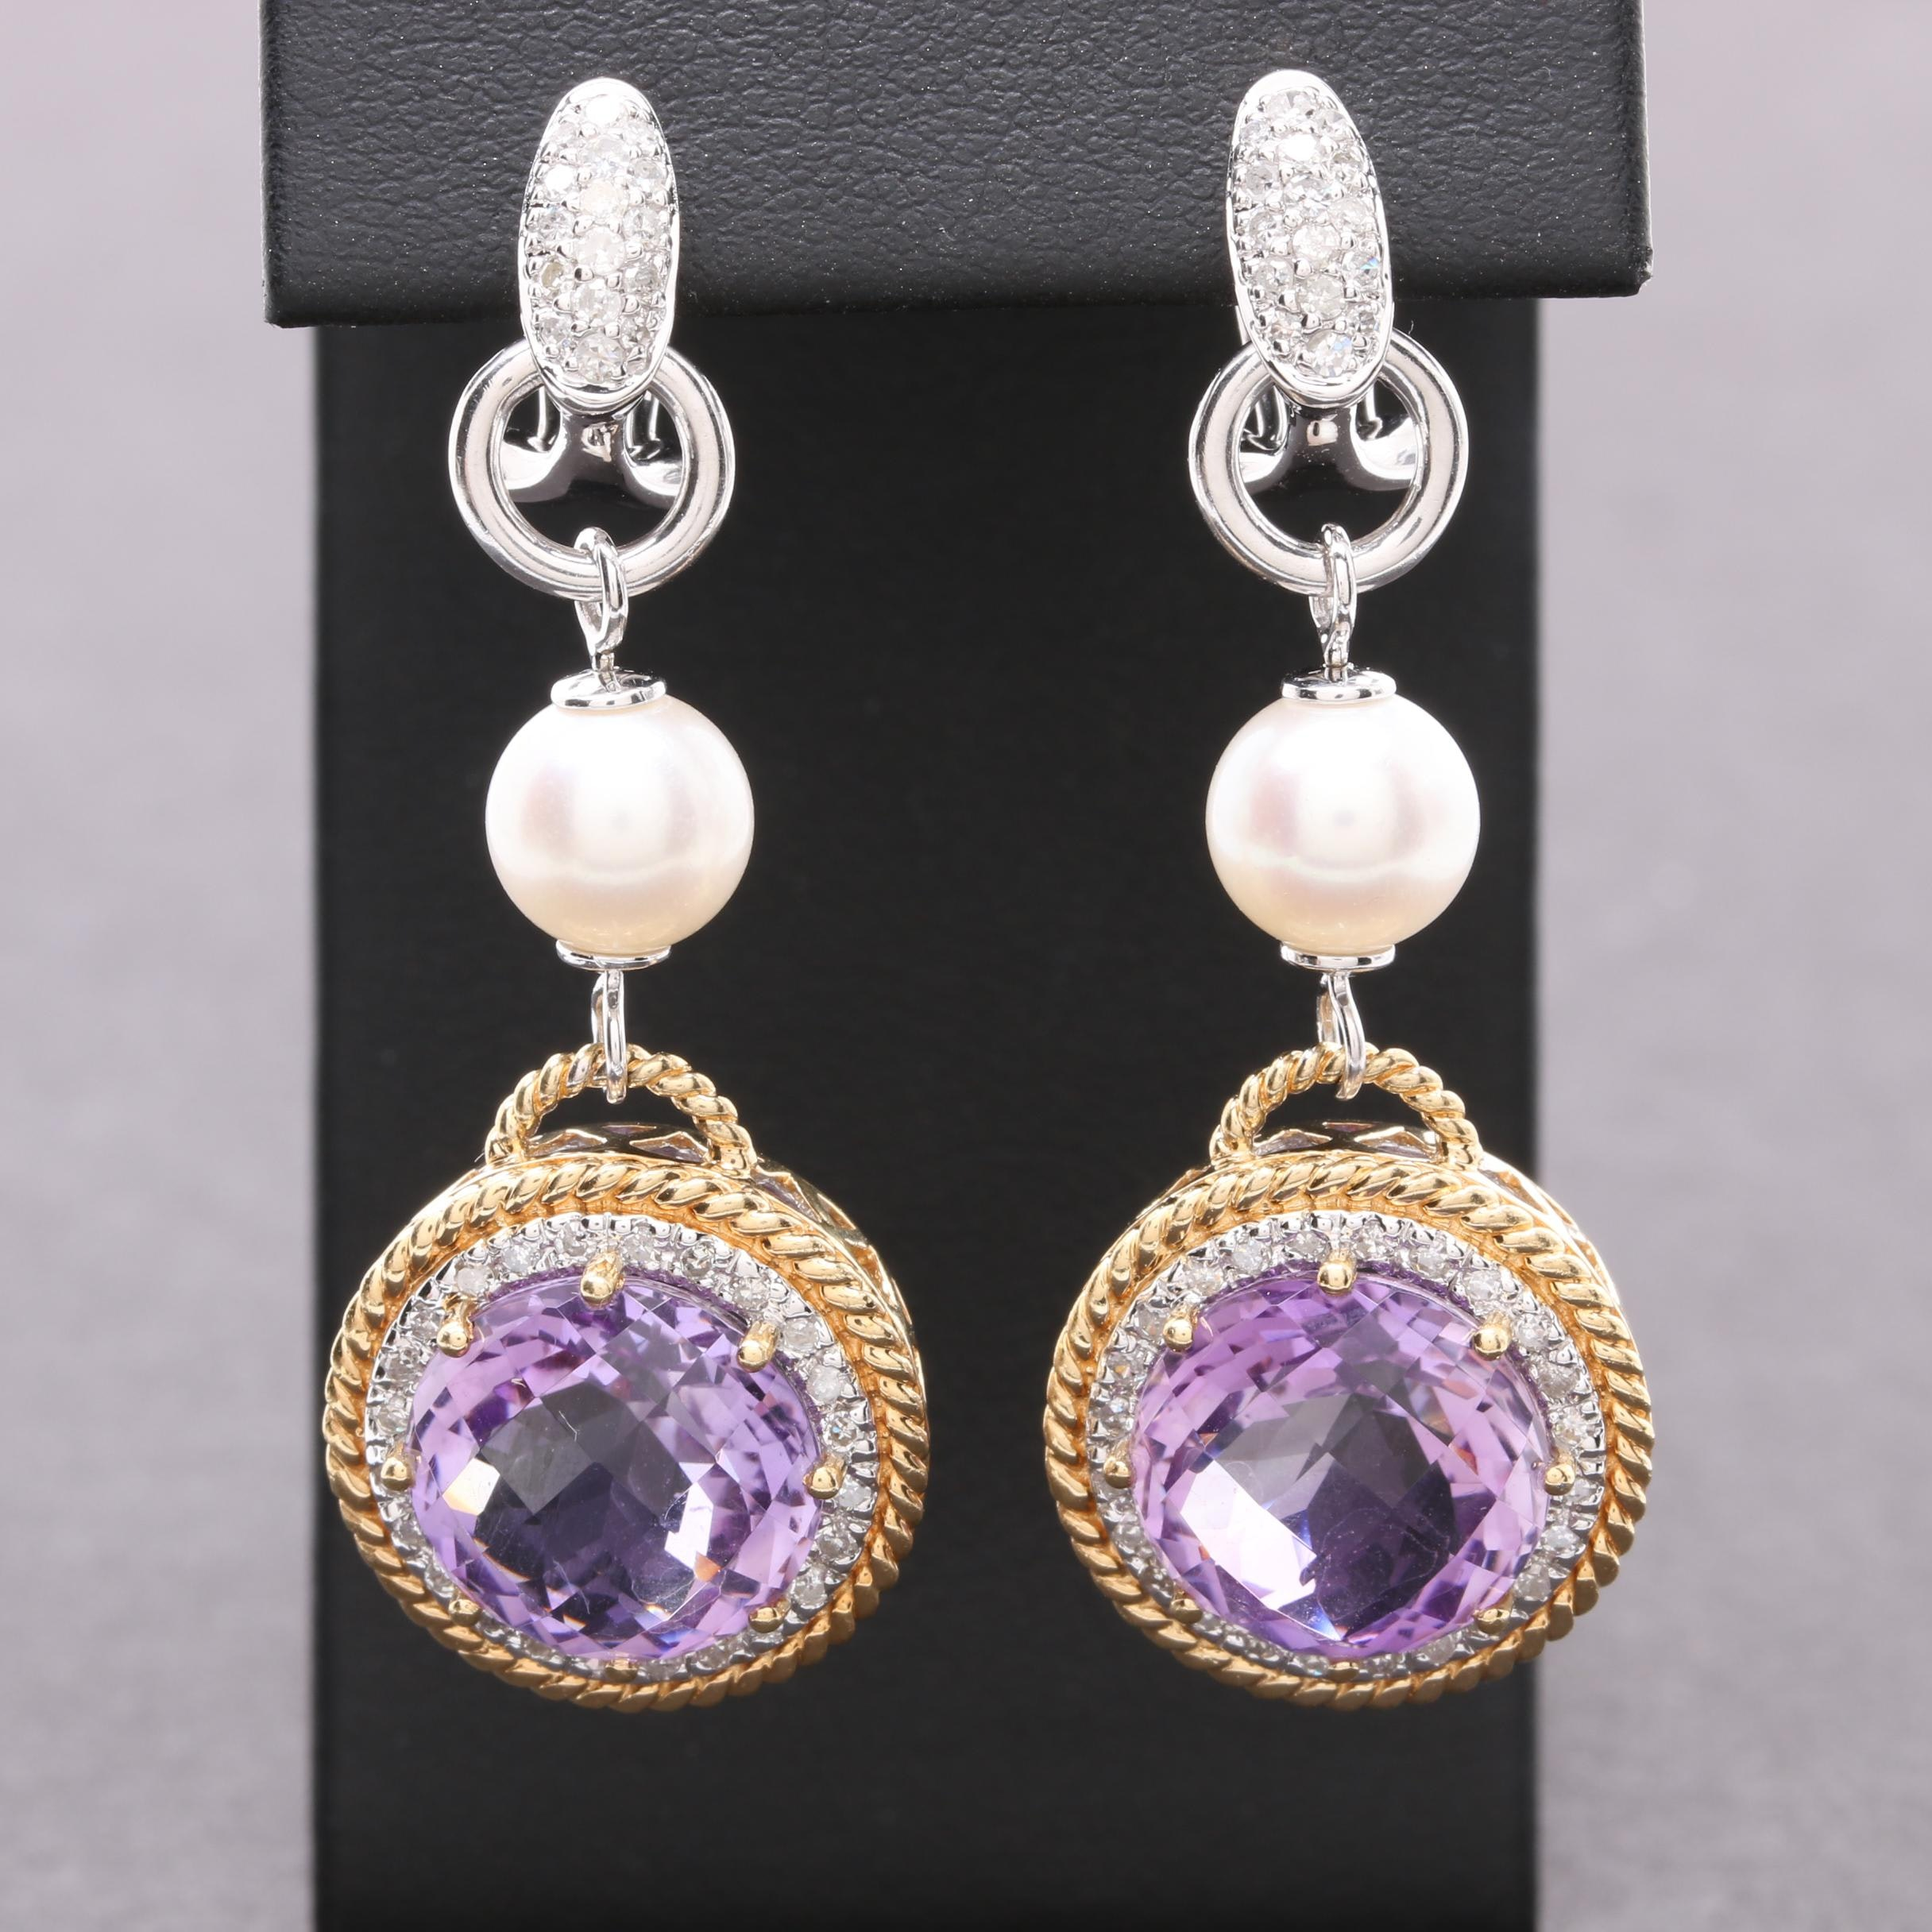 14K White and Yellow Gold Amethyst, Cultured Pearl, and Diamond Earrings